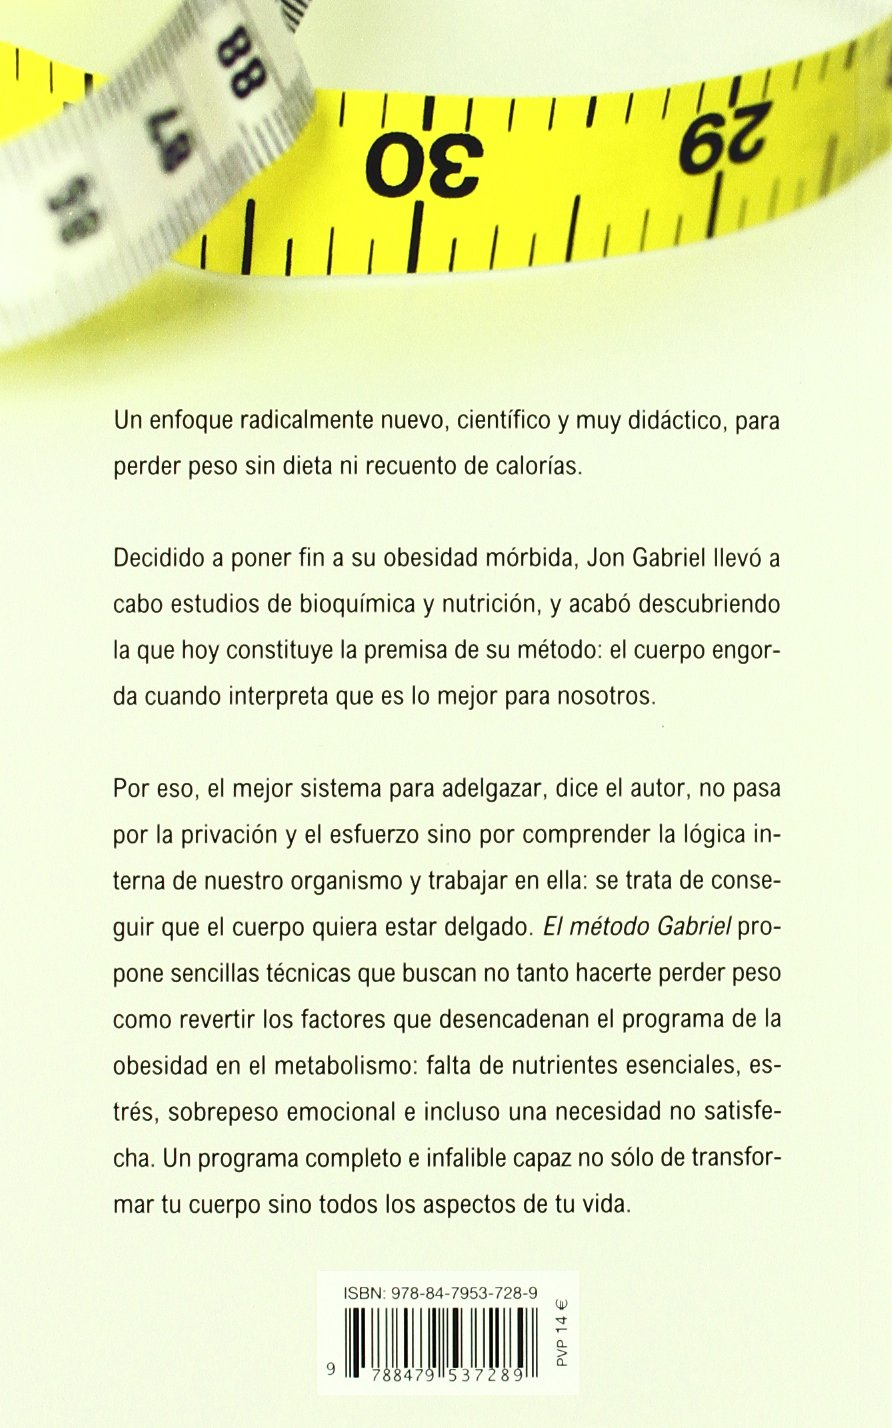 El metodo Gabriel (Spanish Edition): Jon Gabriel: 9788479537289: Amazon.com: Books